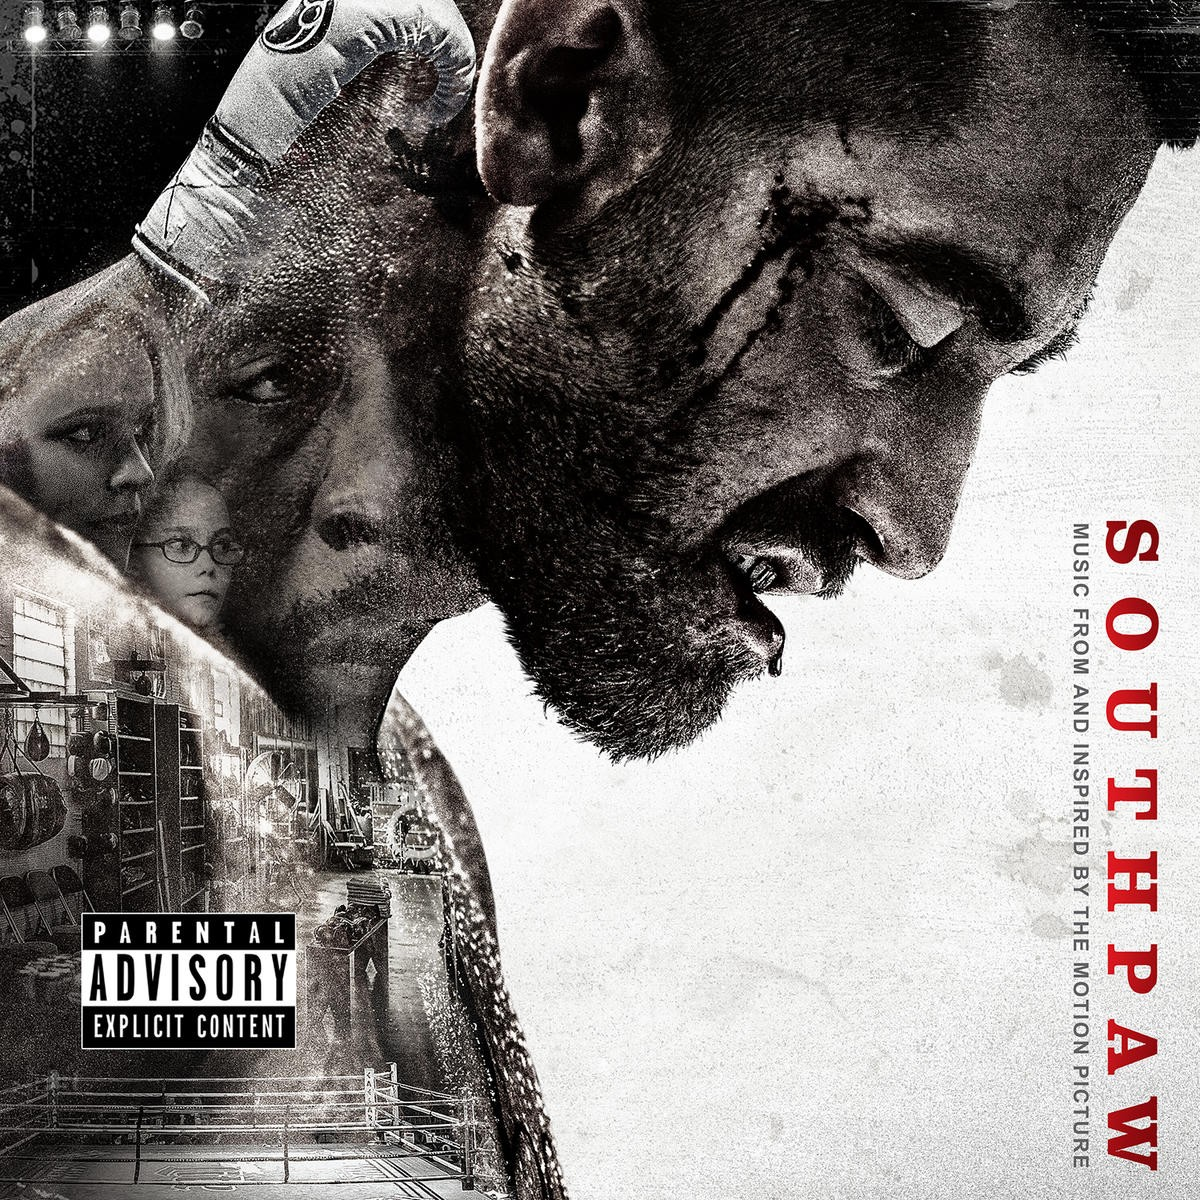 Southpaw (Music from and Inspired By the Motion Picture) CD - 06025 4742430